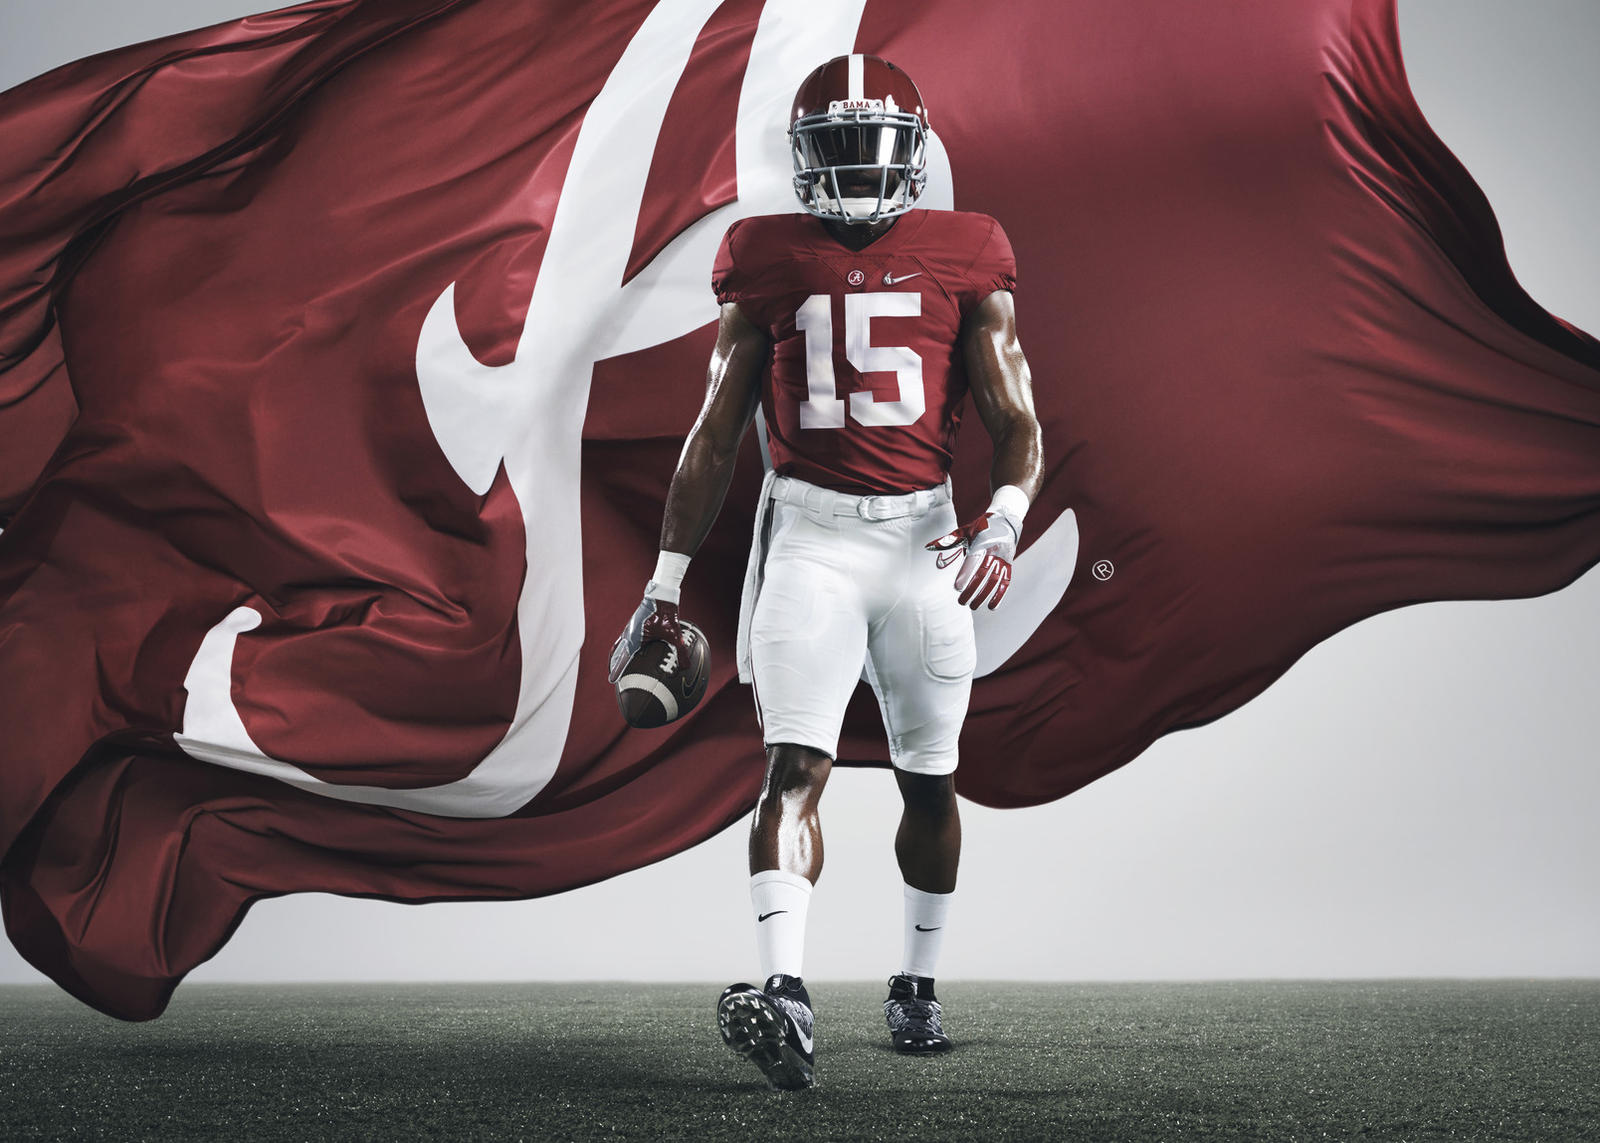 - Playoff Nike Nike Uniform Reveals  Football College Looks